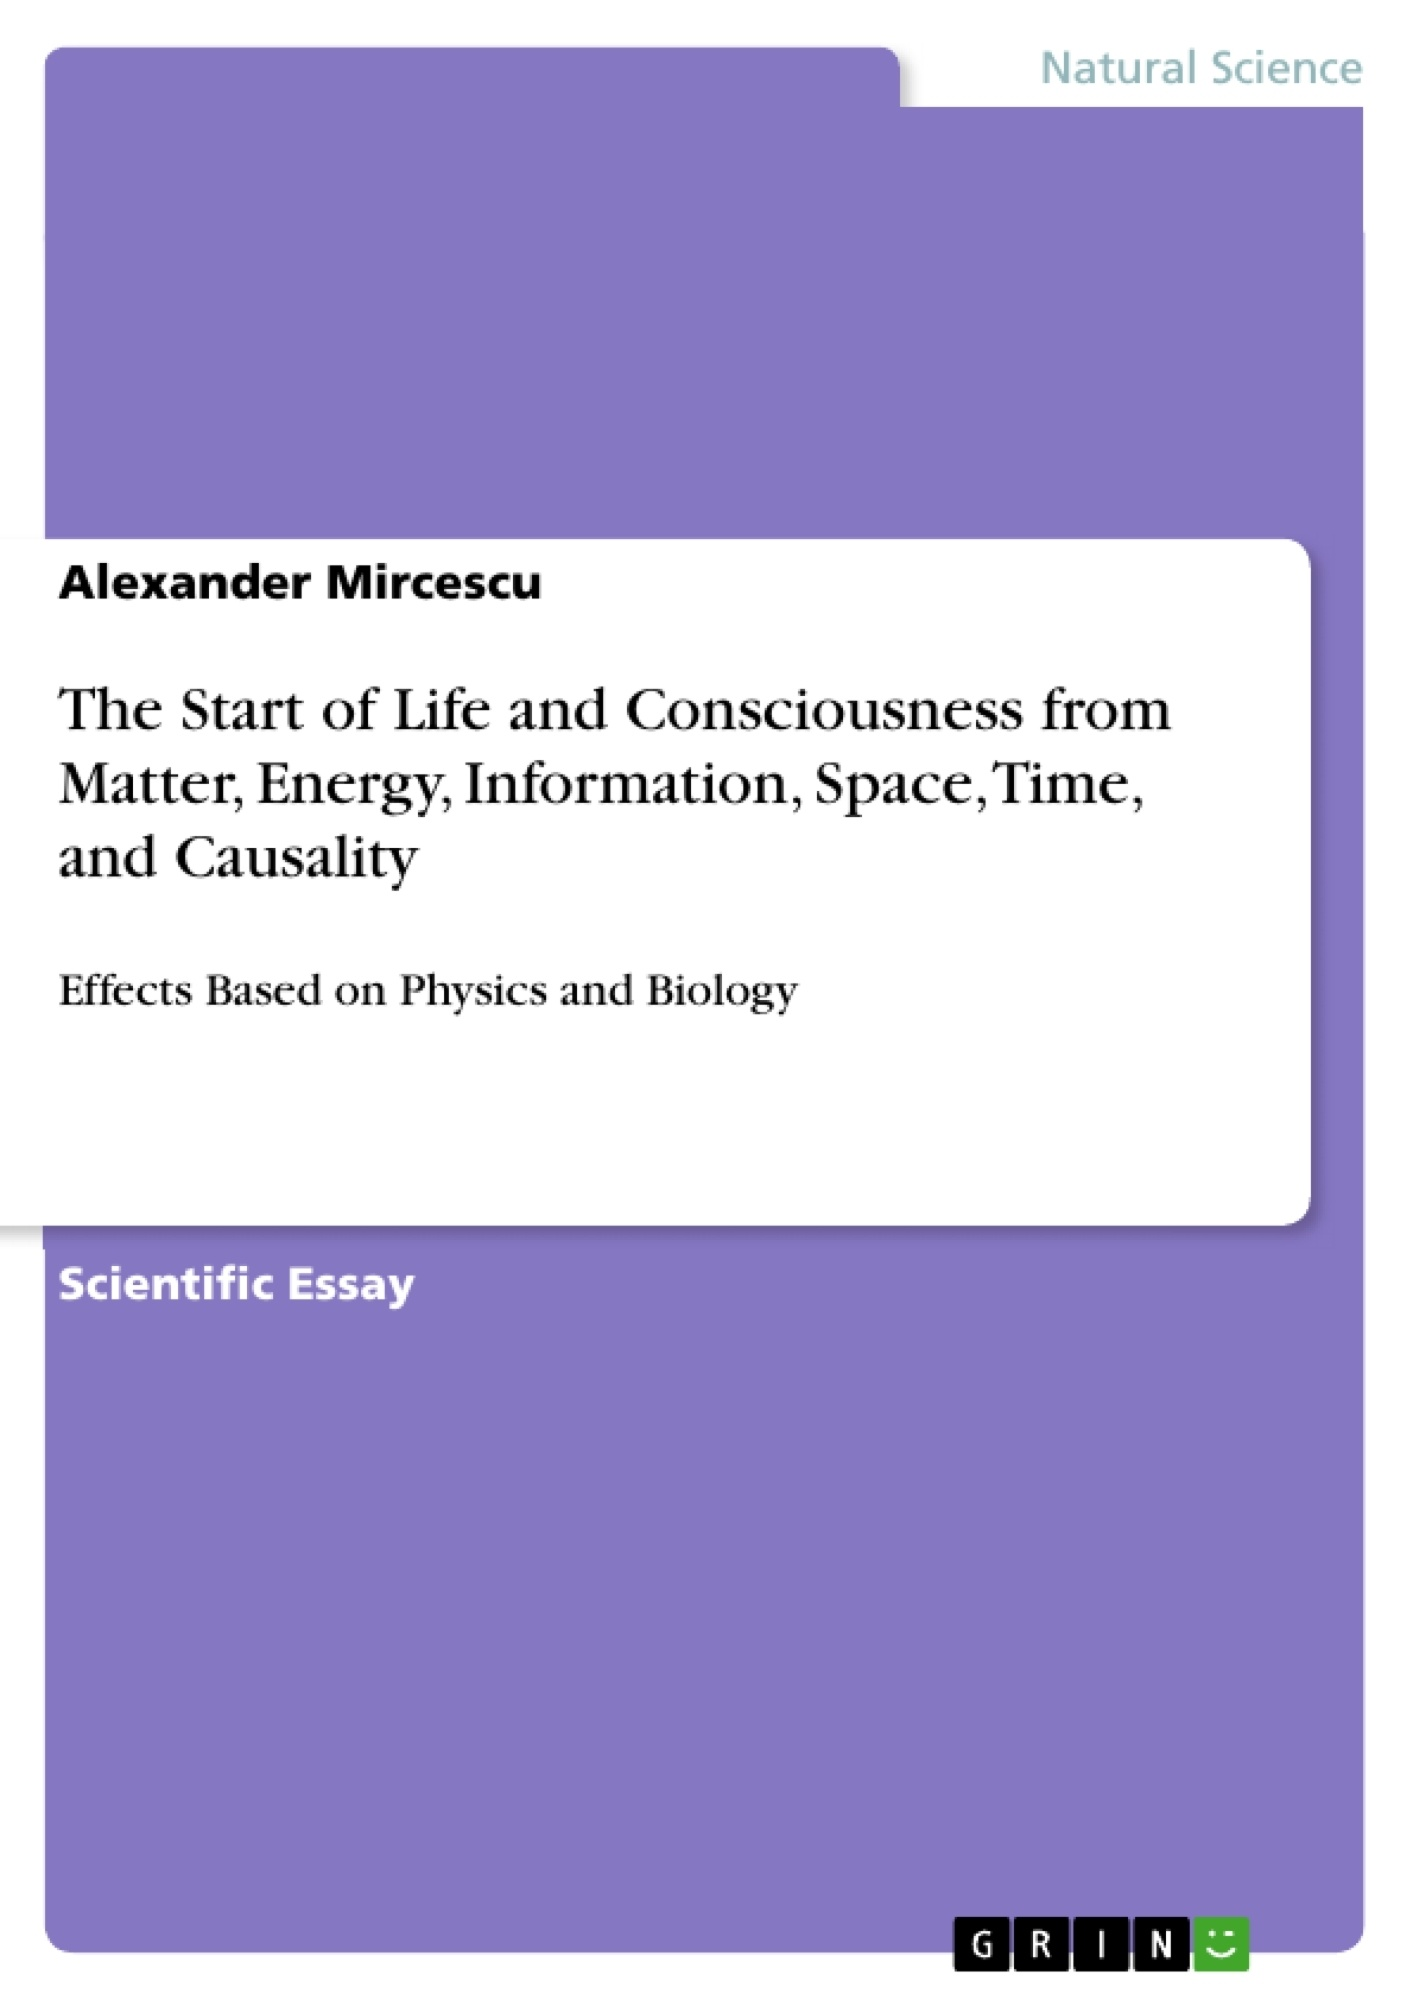 Title: The Start of Life and Consciousness from Matter, Energy, Information, Space, Time, and Causality